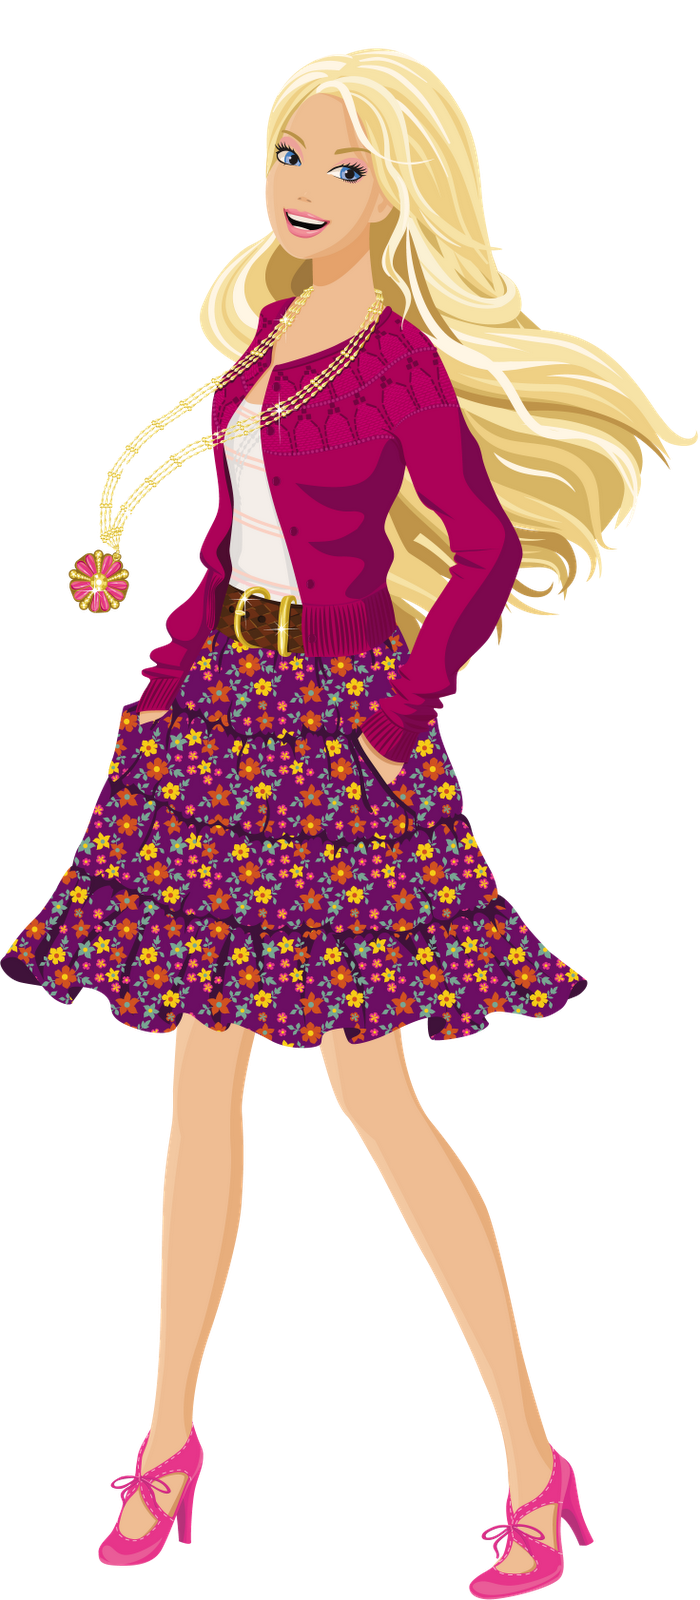 Images for barbie png. Cool clipart fashionable